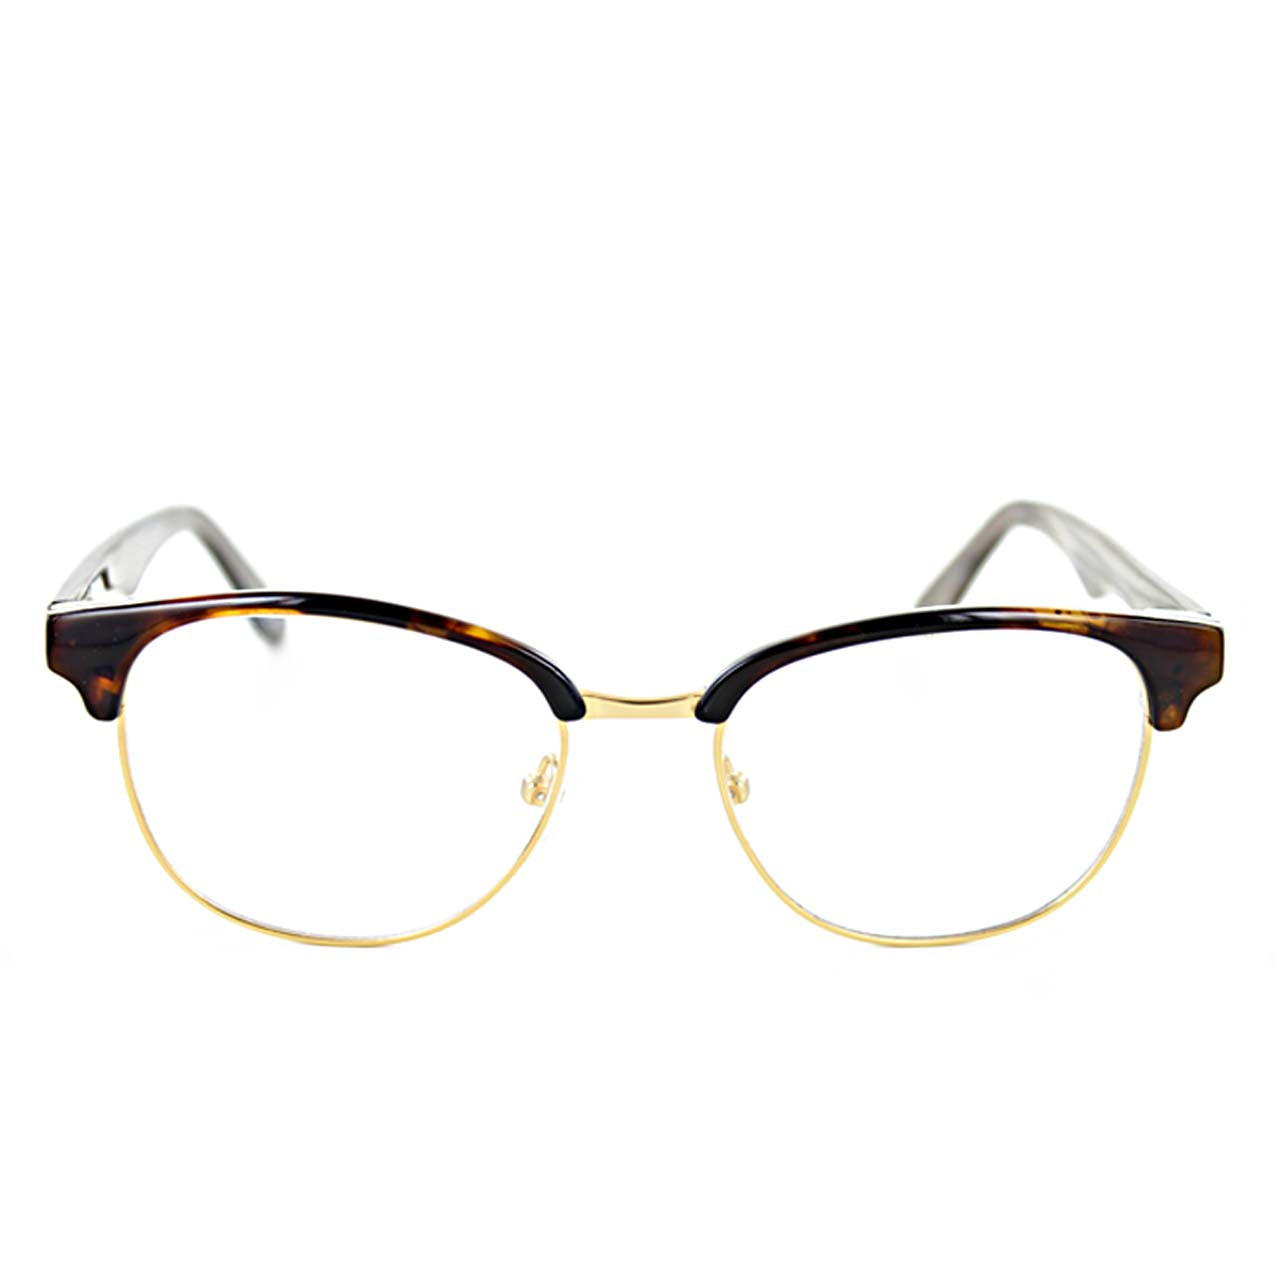 GEEK Eyewear Style Quantum For Him